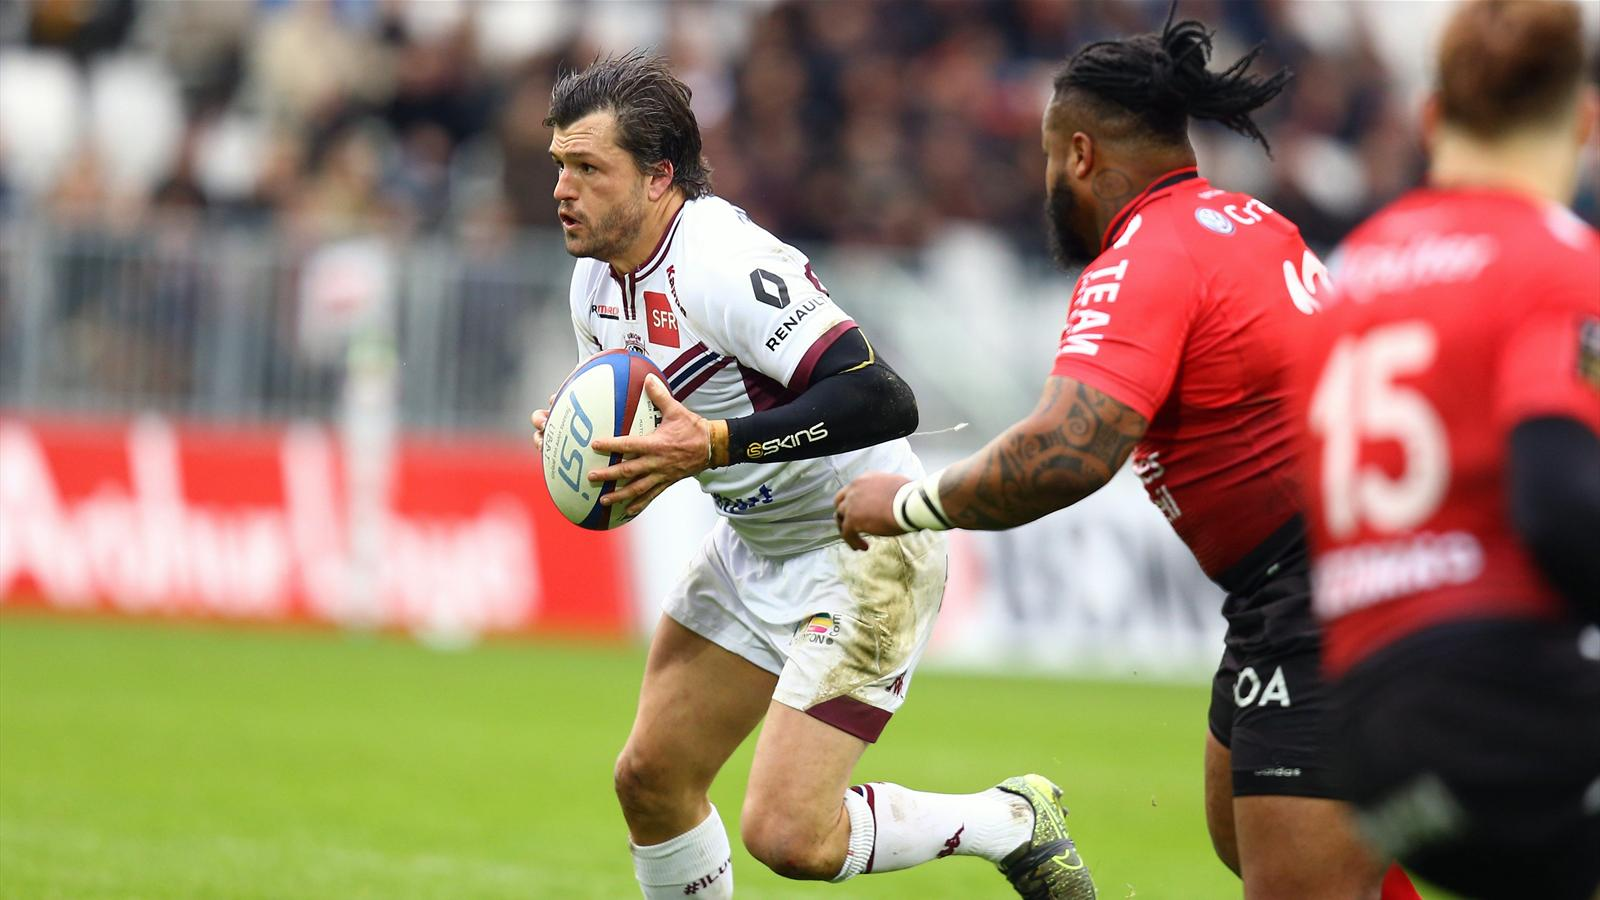 Adam Ashley-Cooper (Bordeaux-Bègles) face à Toulon - 14 février 2016